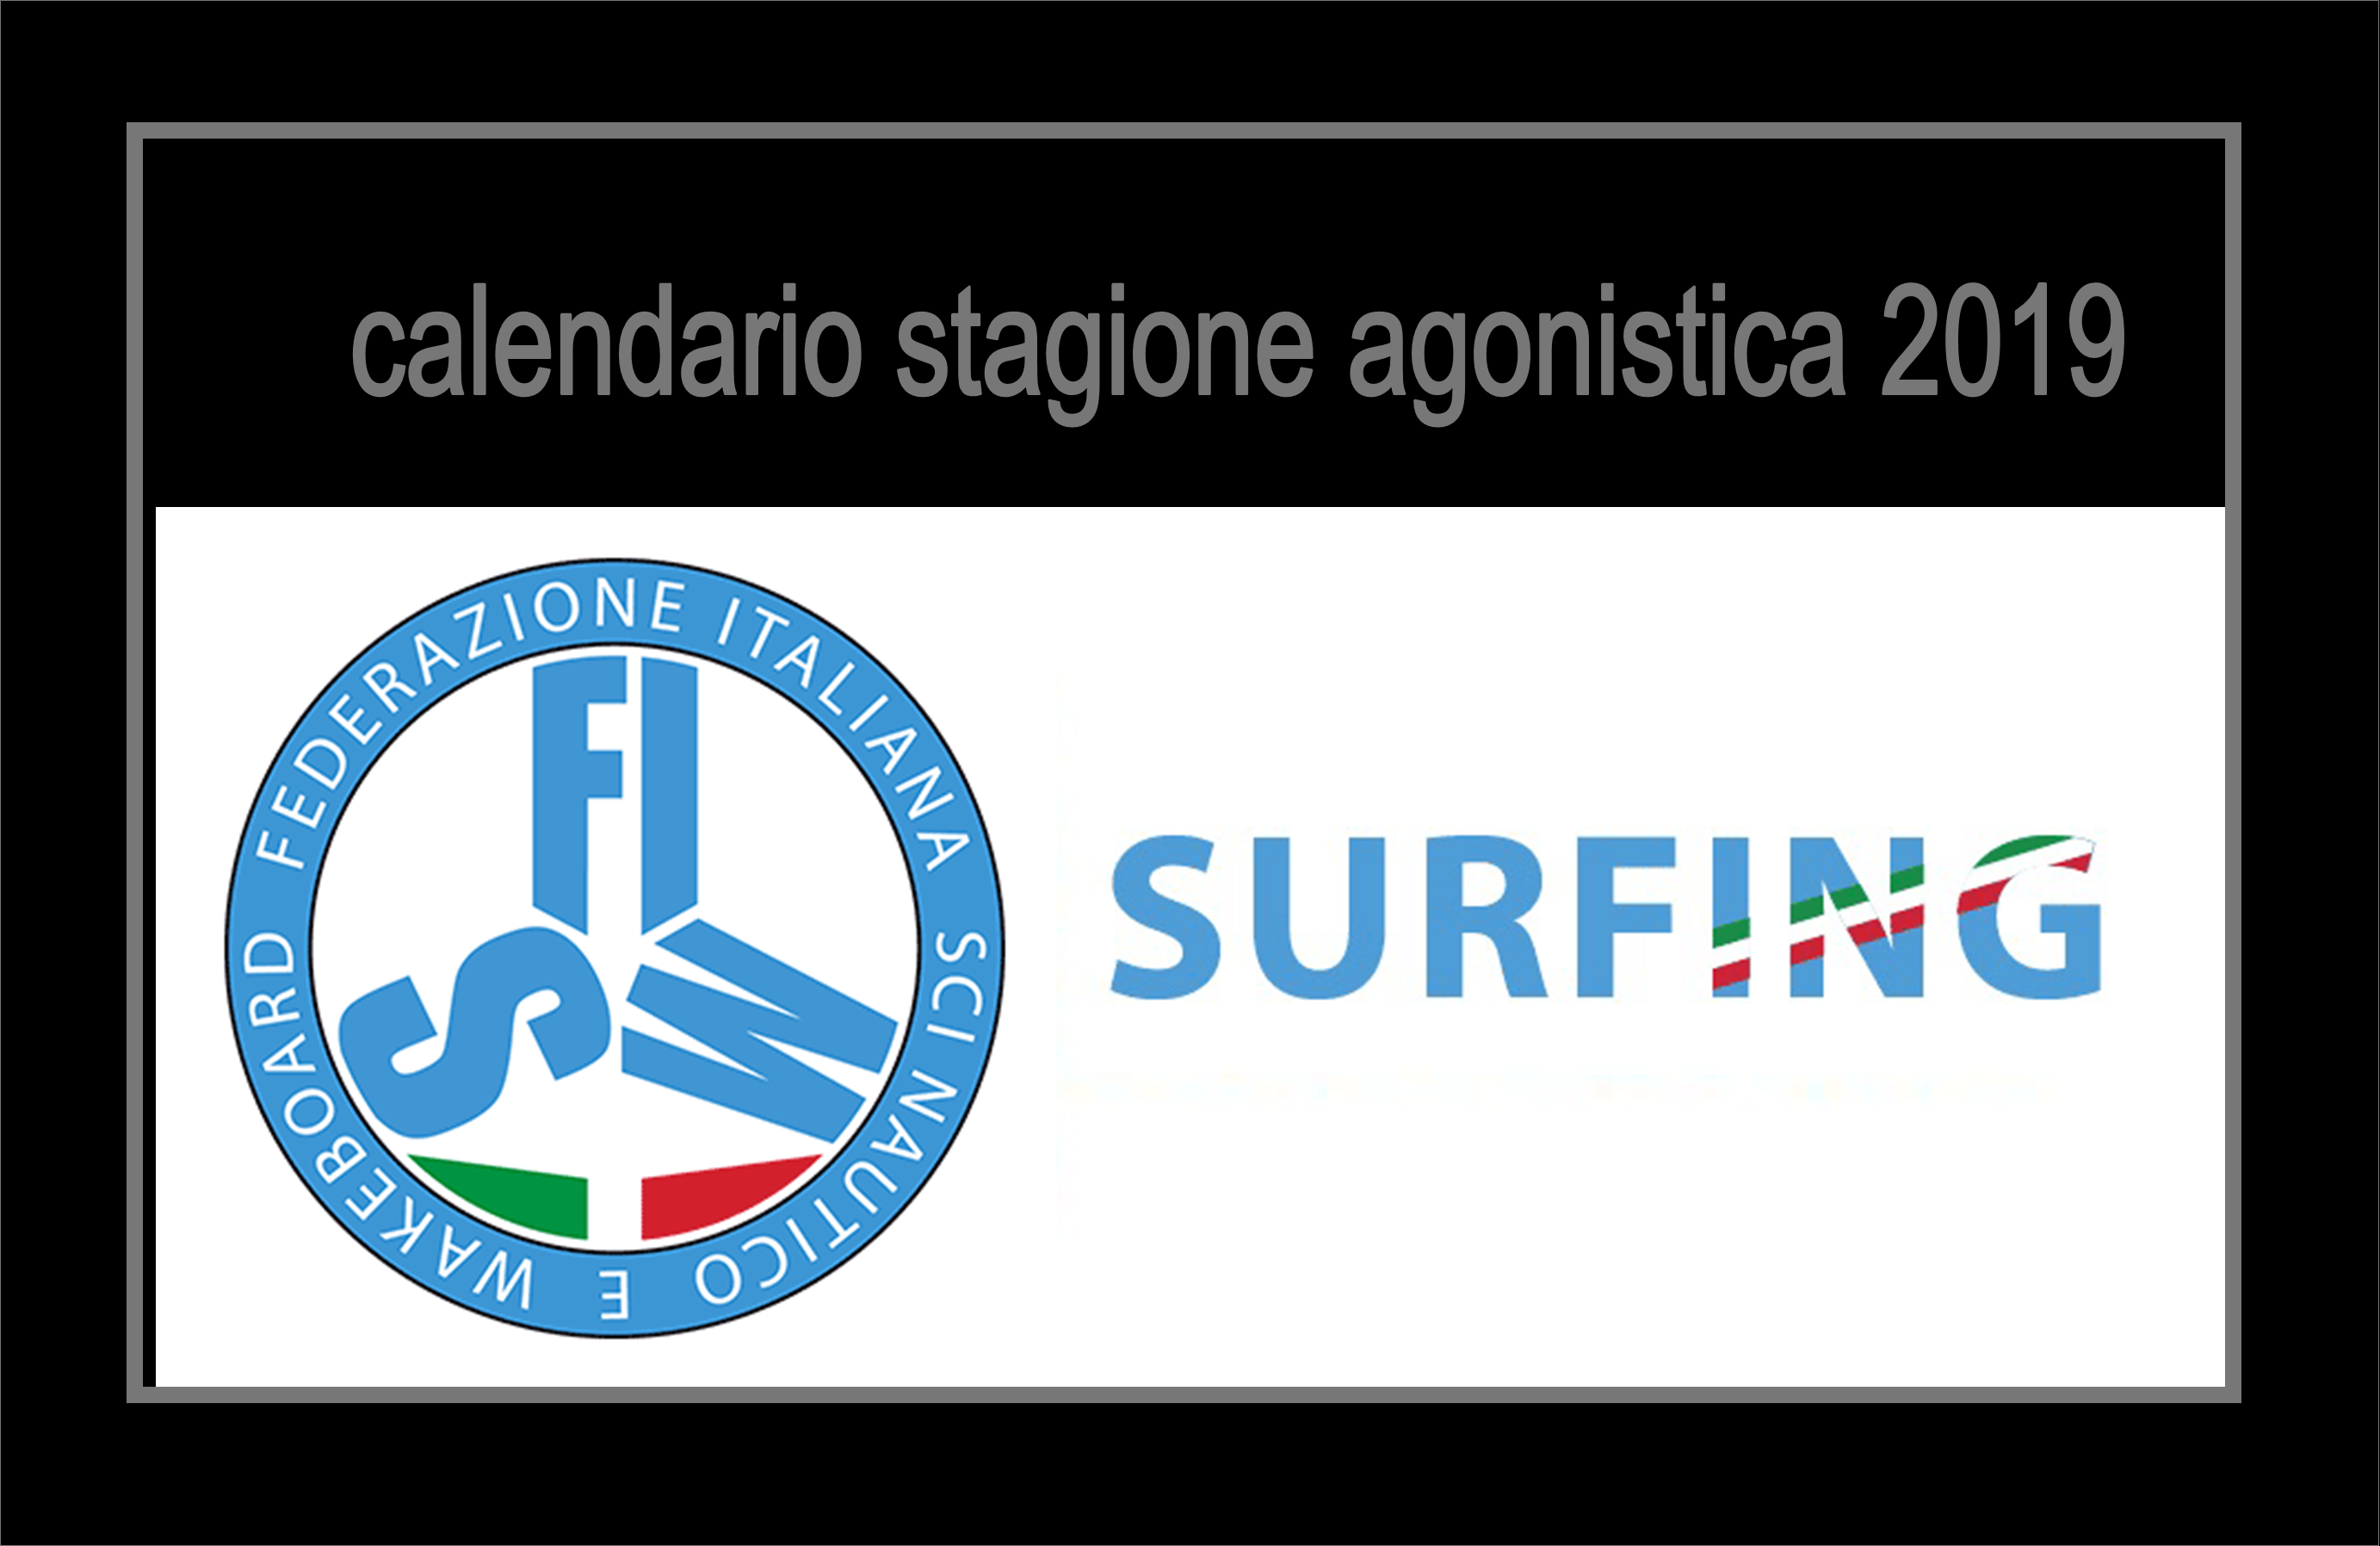 Surfing FISW # Calendari Stagione Agonistica Surfing 2019